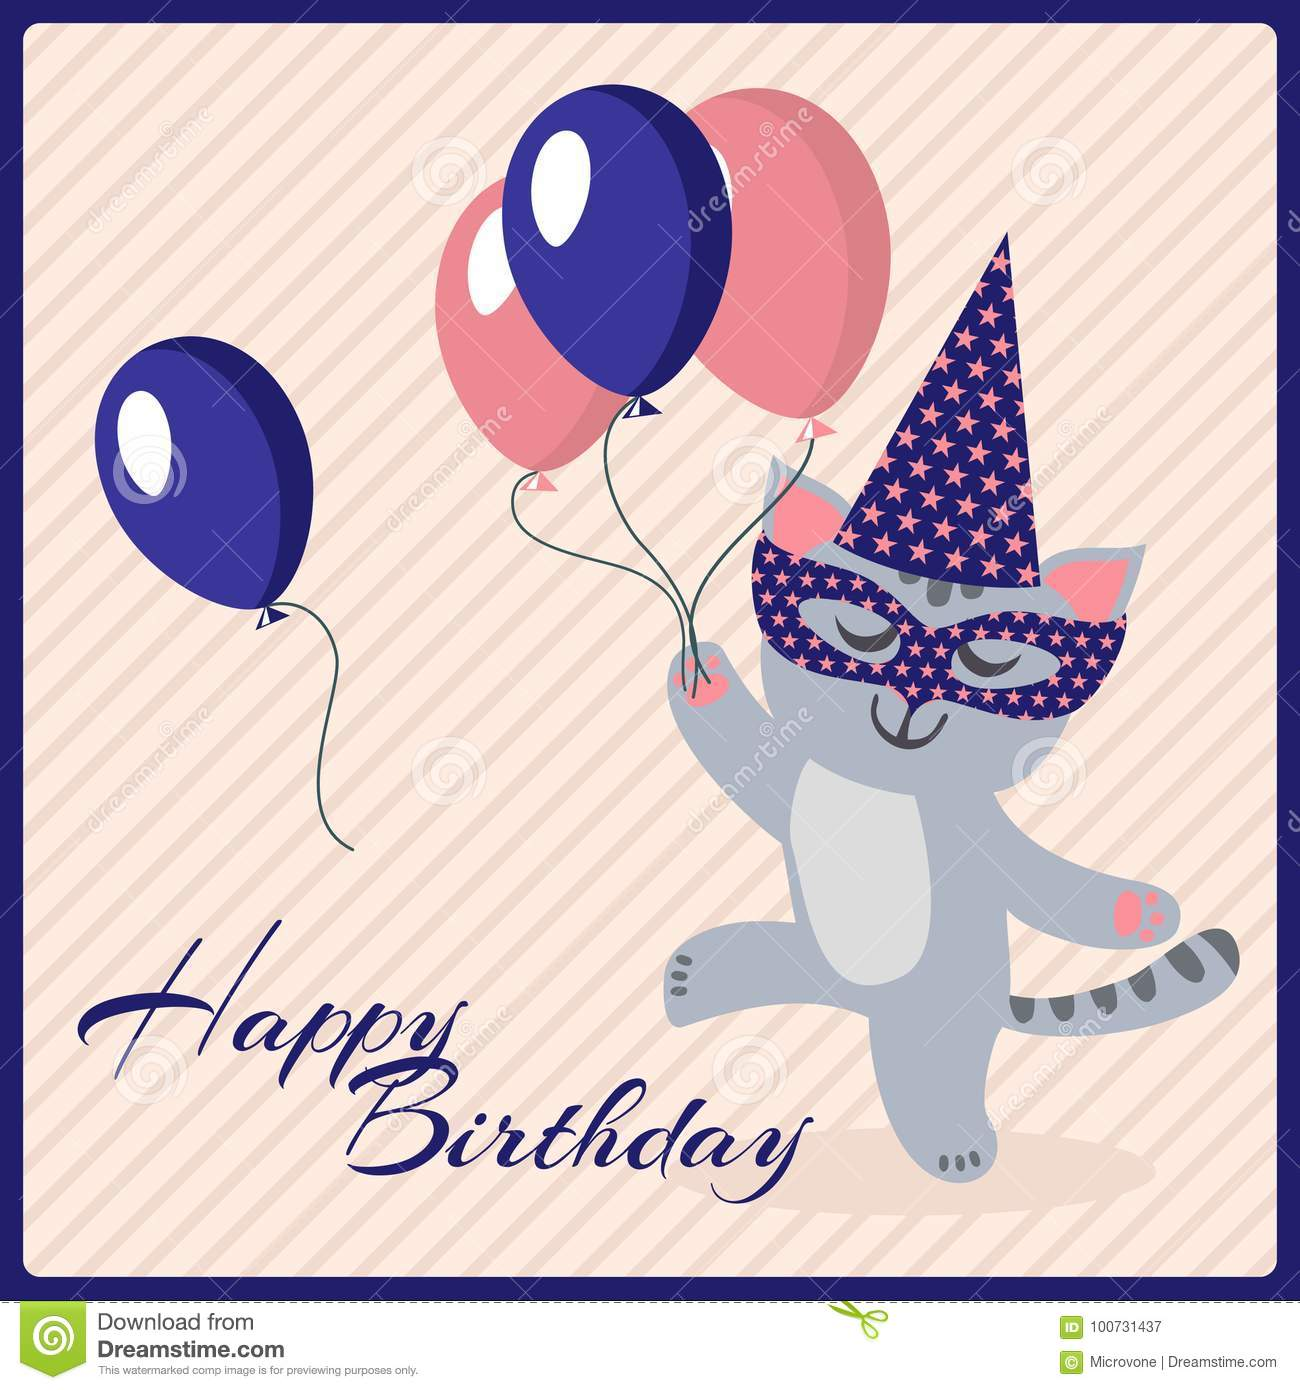 Happy Birthday Postcard Template With Cute Masquerade Cat